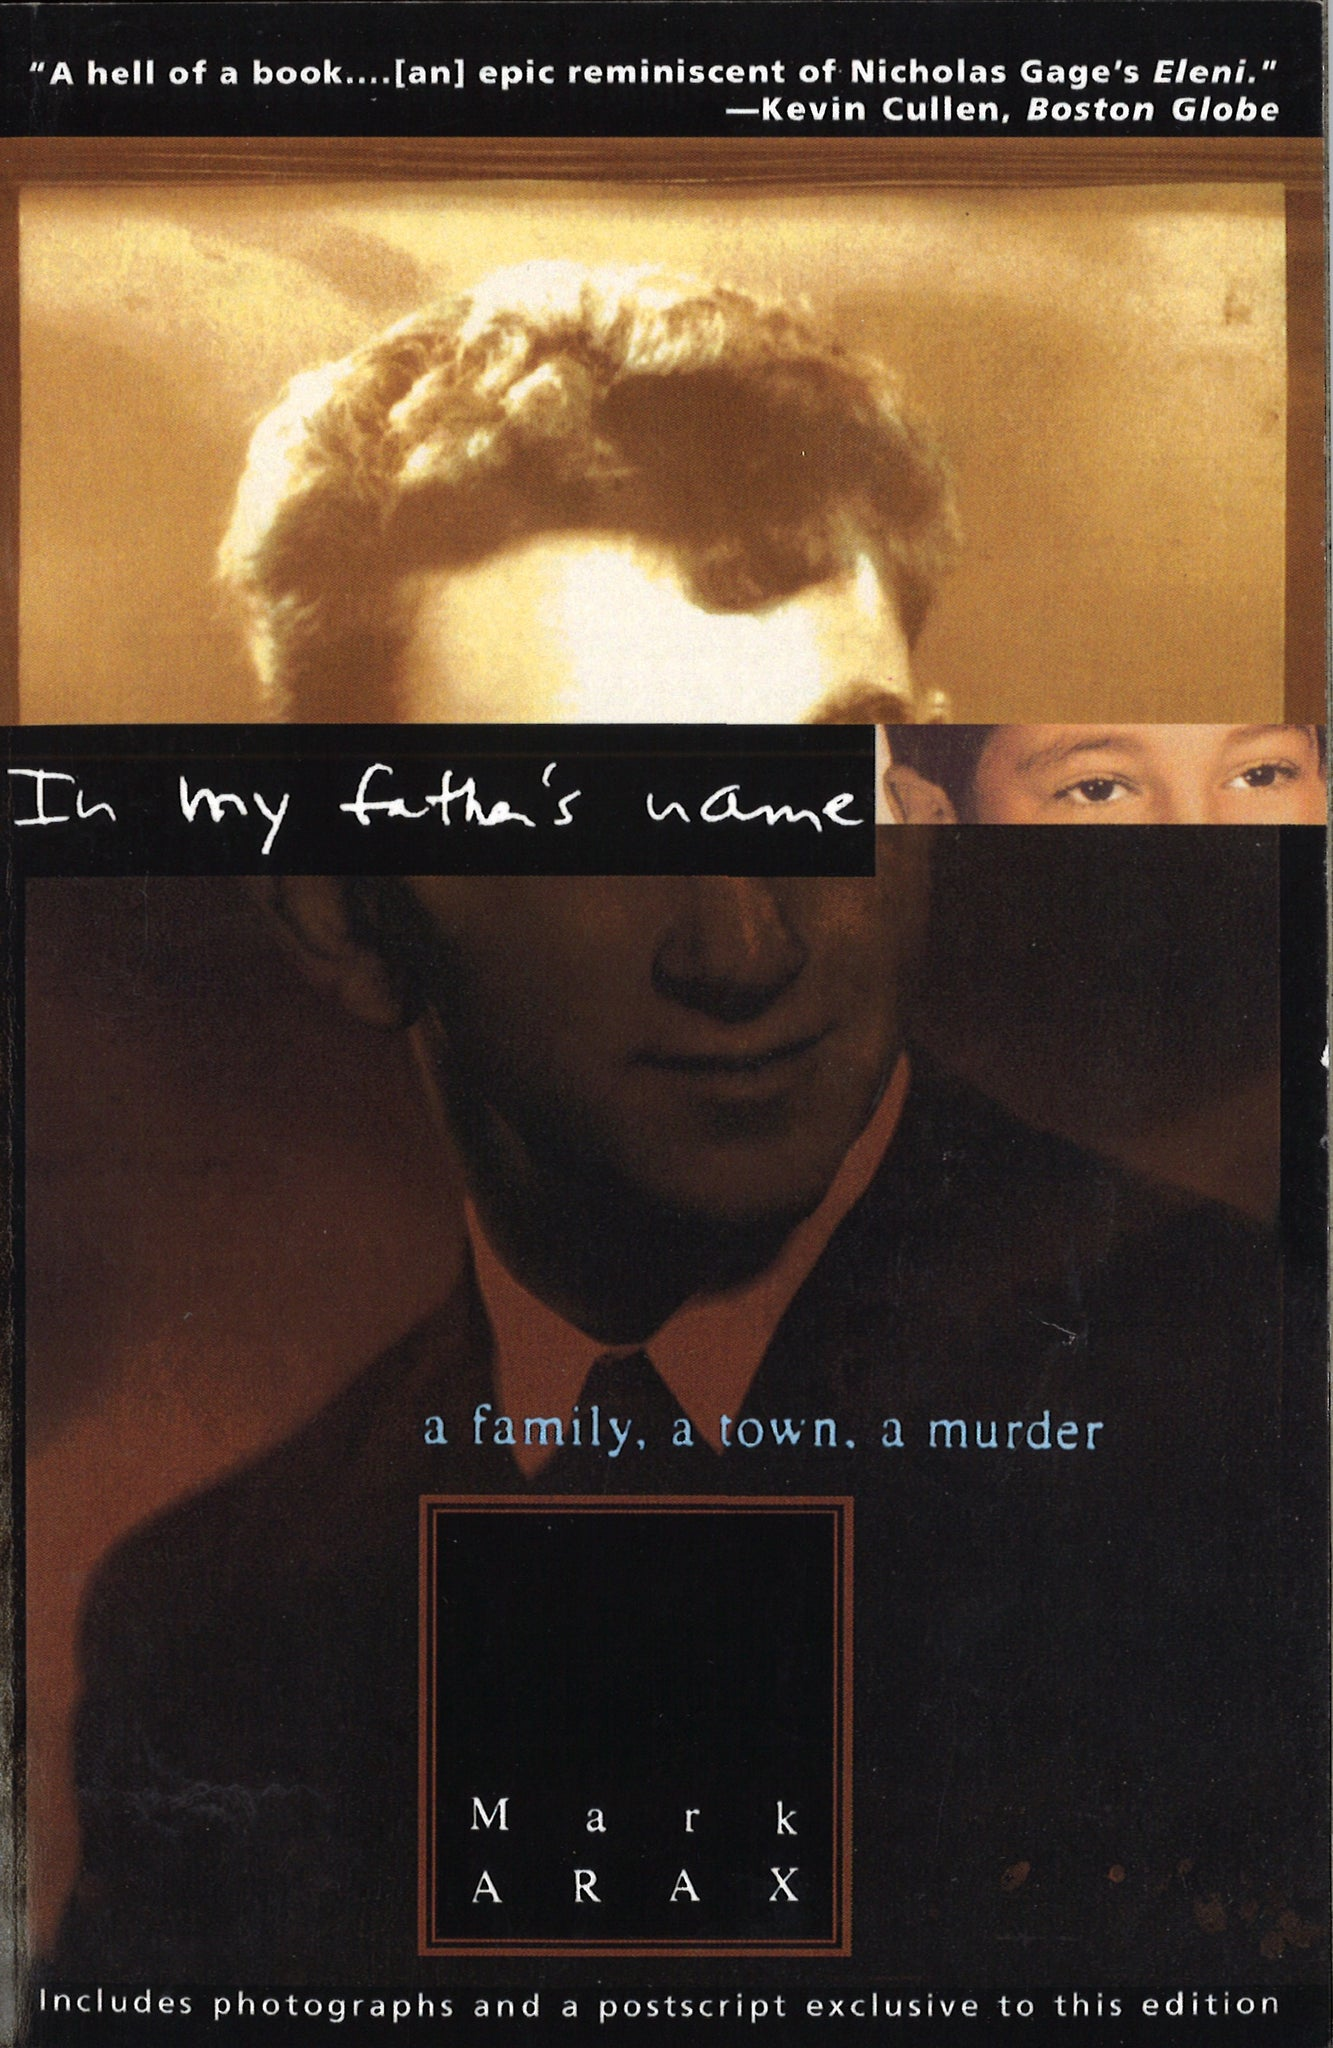 IN MY FATHER'S NAME: A Family, A Town, A Murder